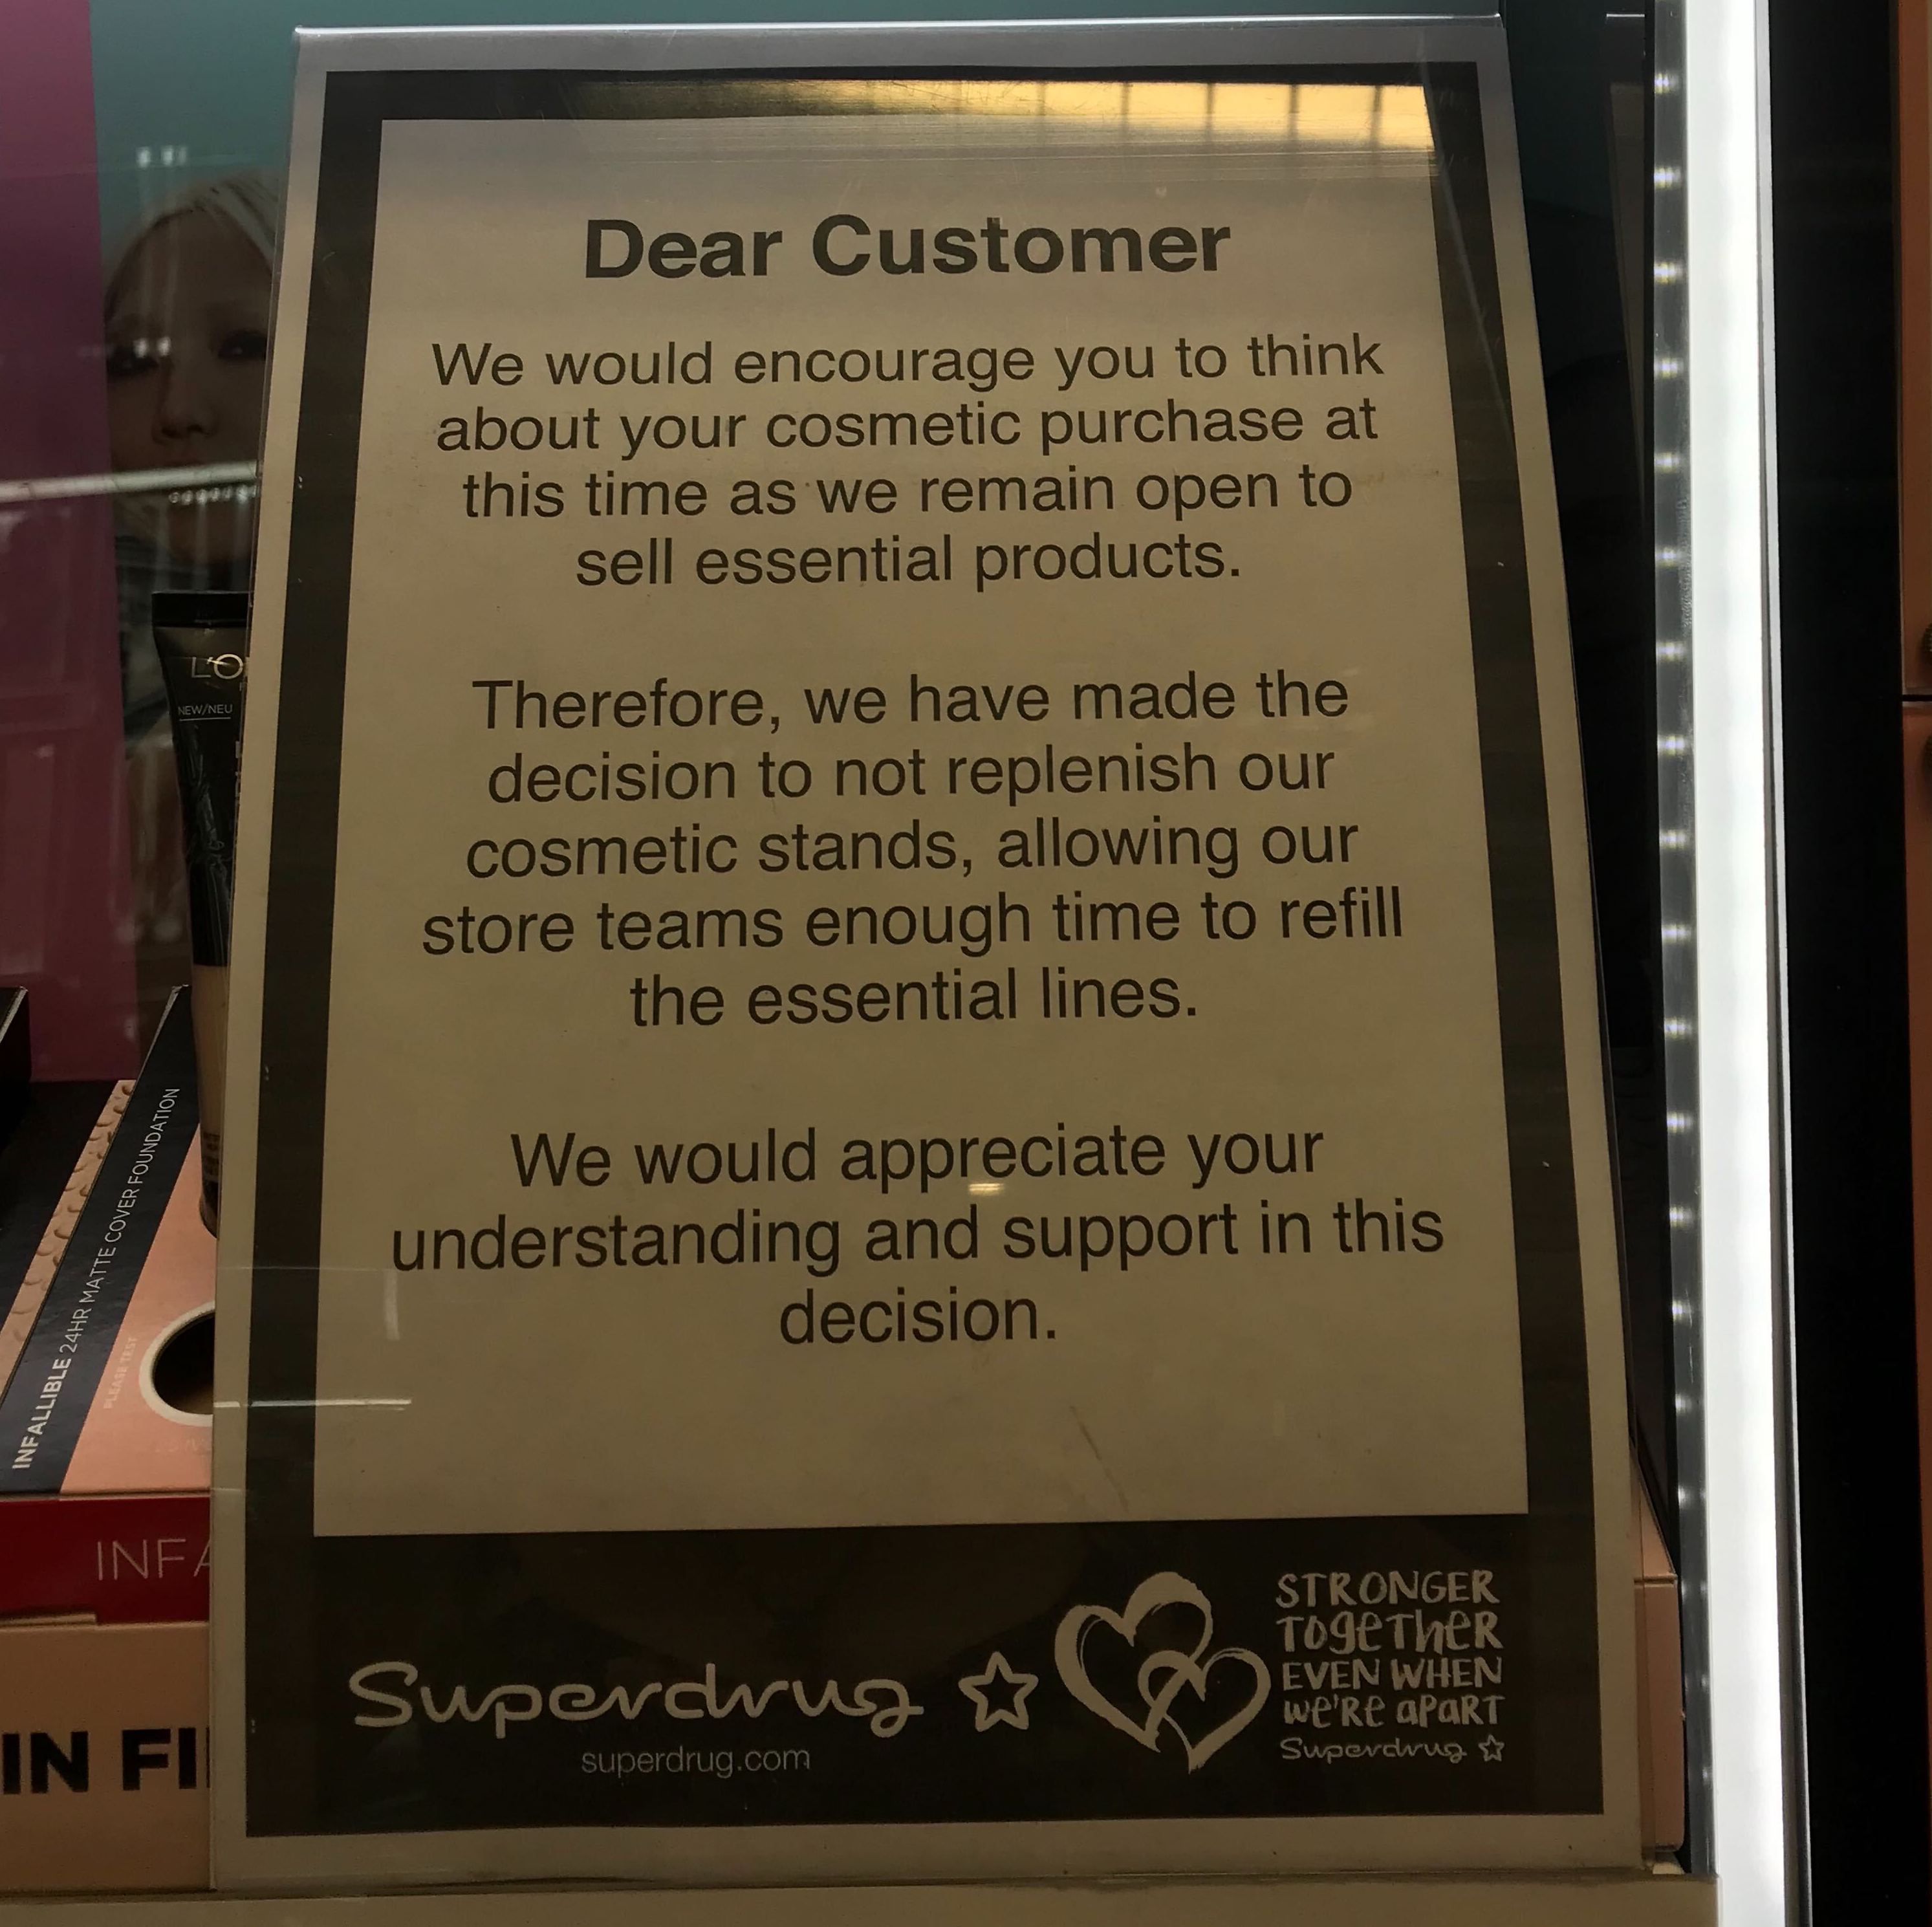 A notice in a store urging customers to think about their cosmetic purchases